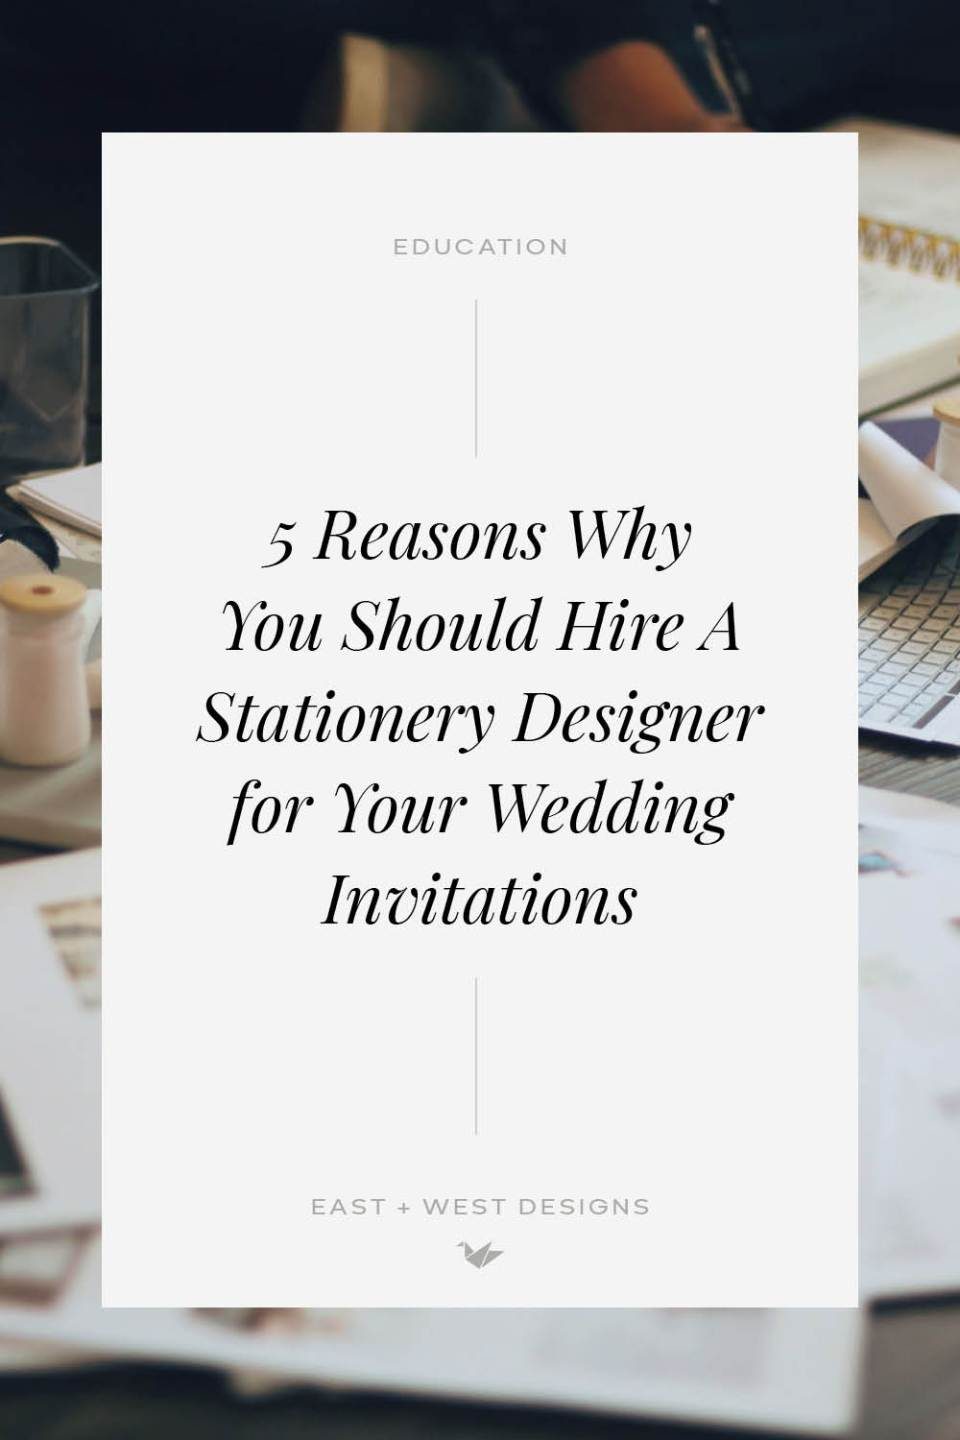 5 Reasons Why You Should Hire A Stationery Designer For Your Wedding Invitations